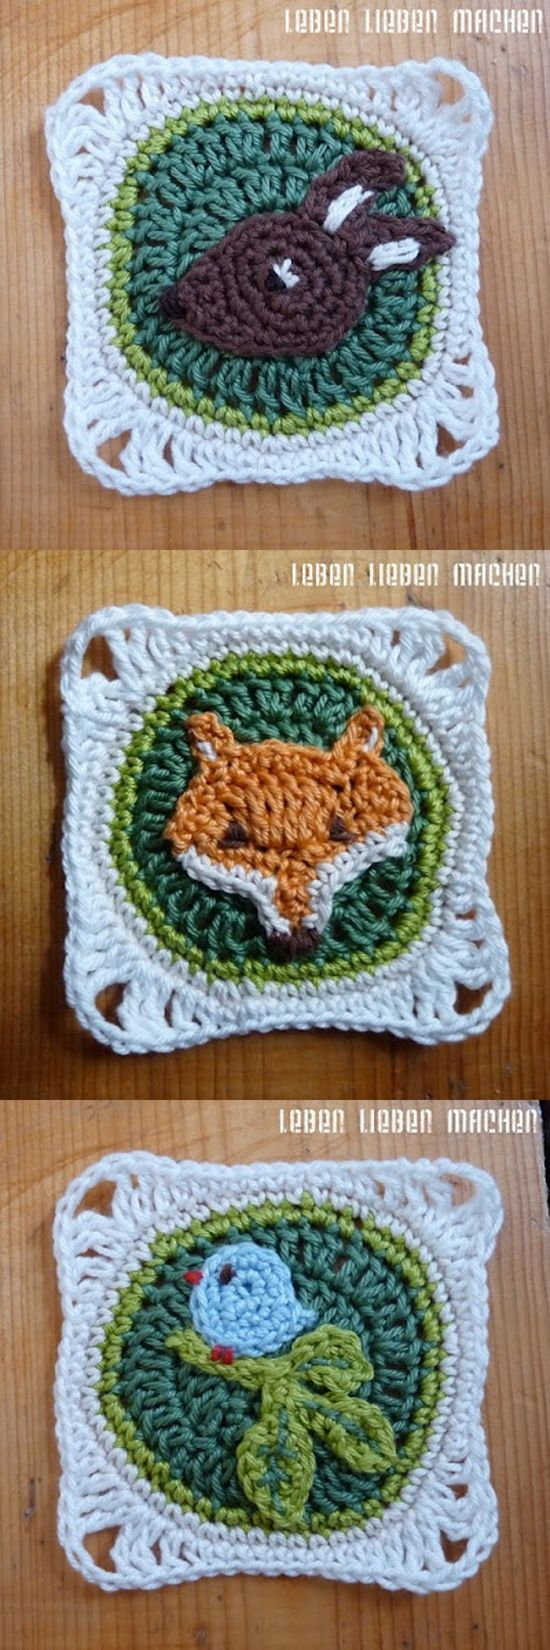 Crochet Animals Granny Squares - Chart and German Tutorial.